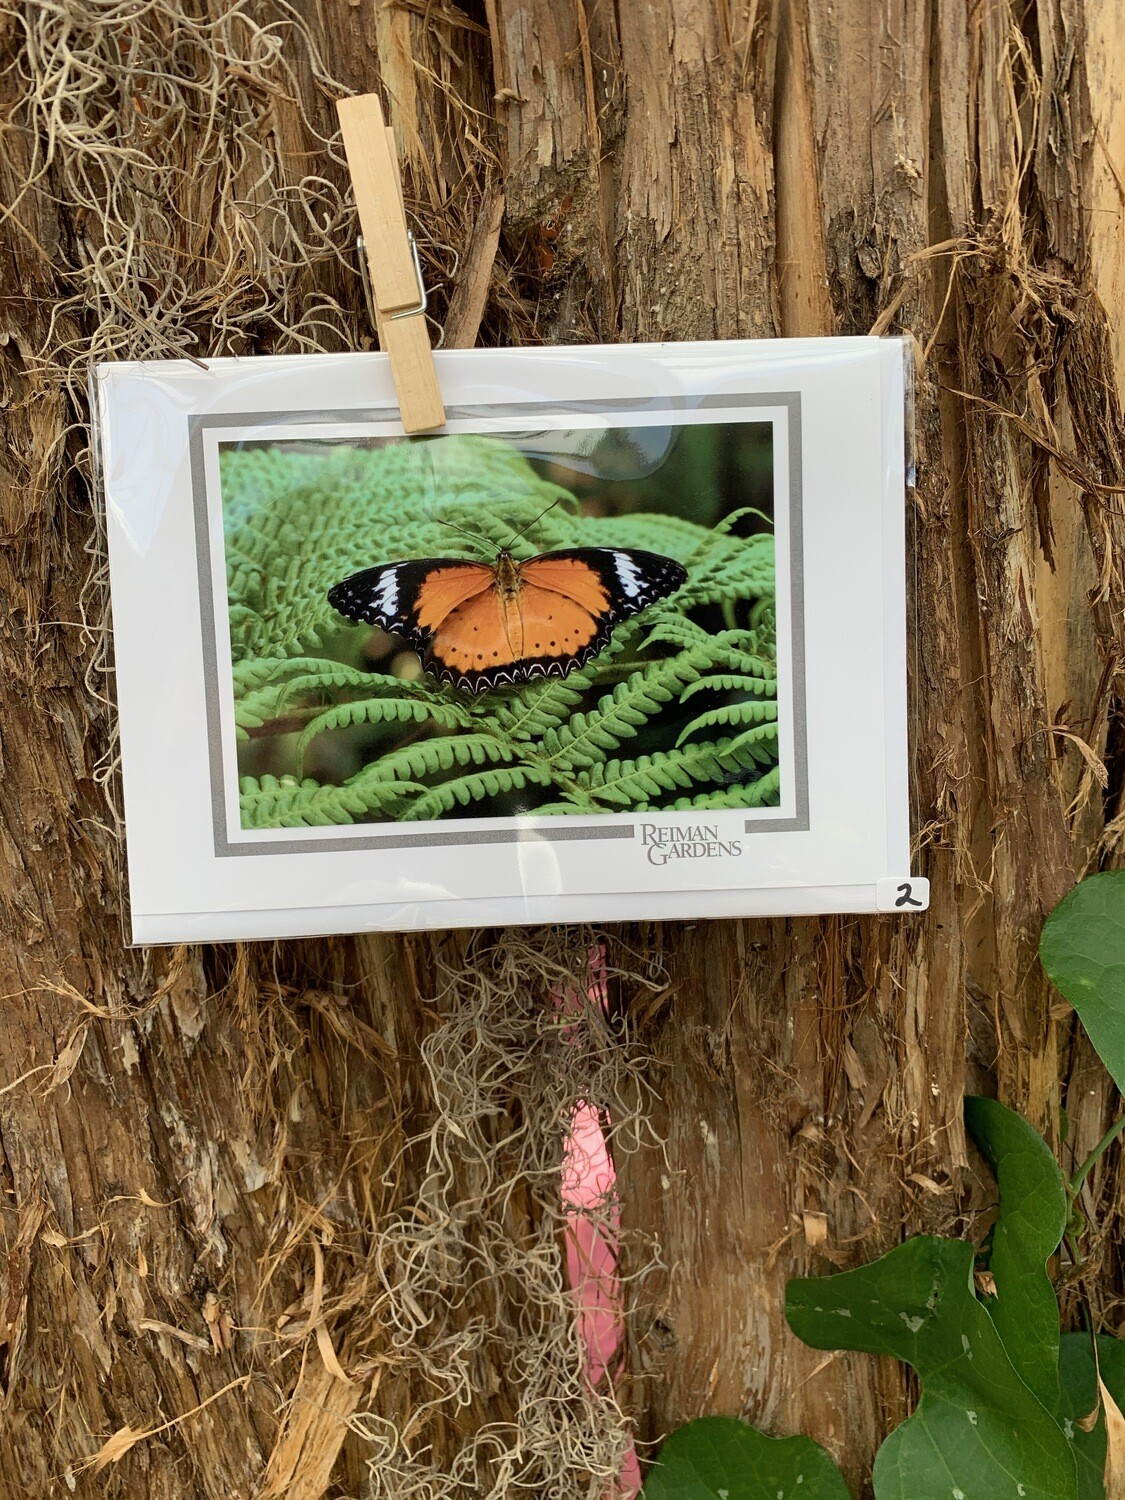 *Card - Black and Orange Butterfly with White Bands on Fern